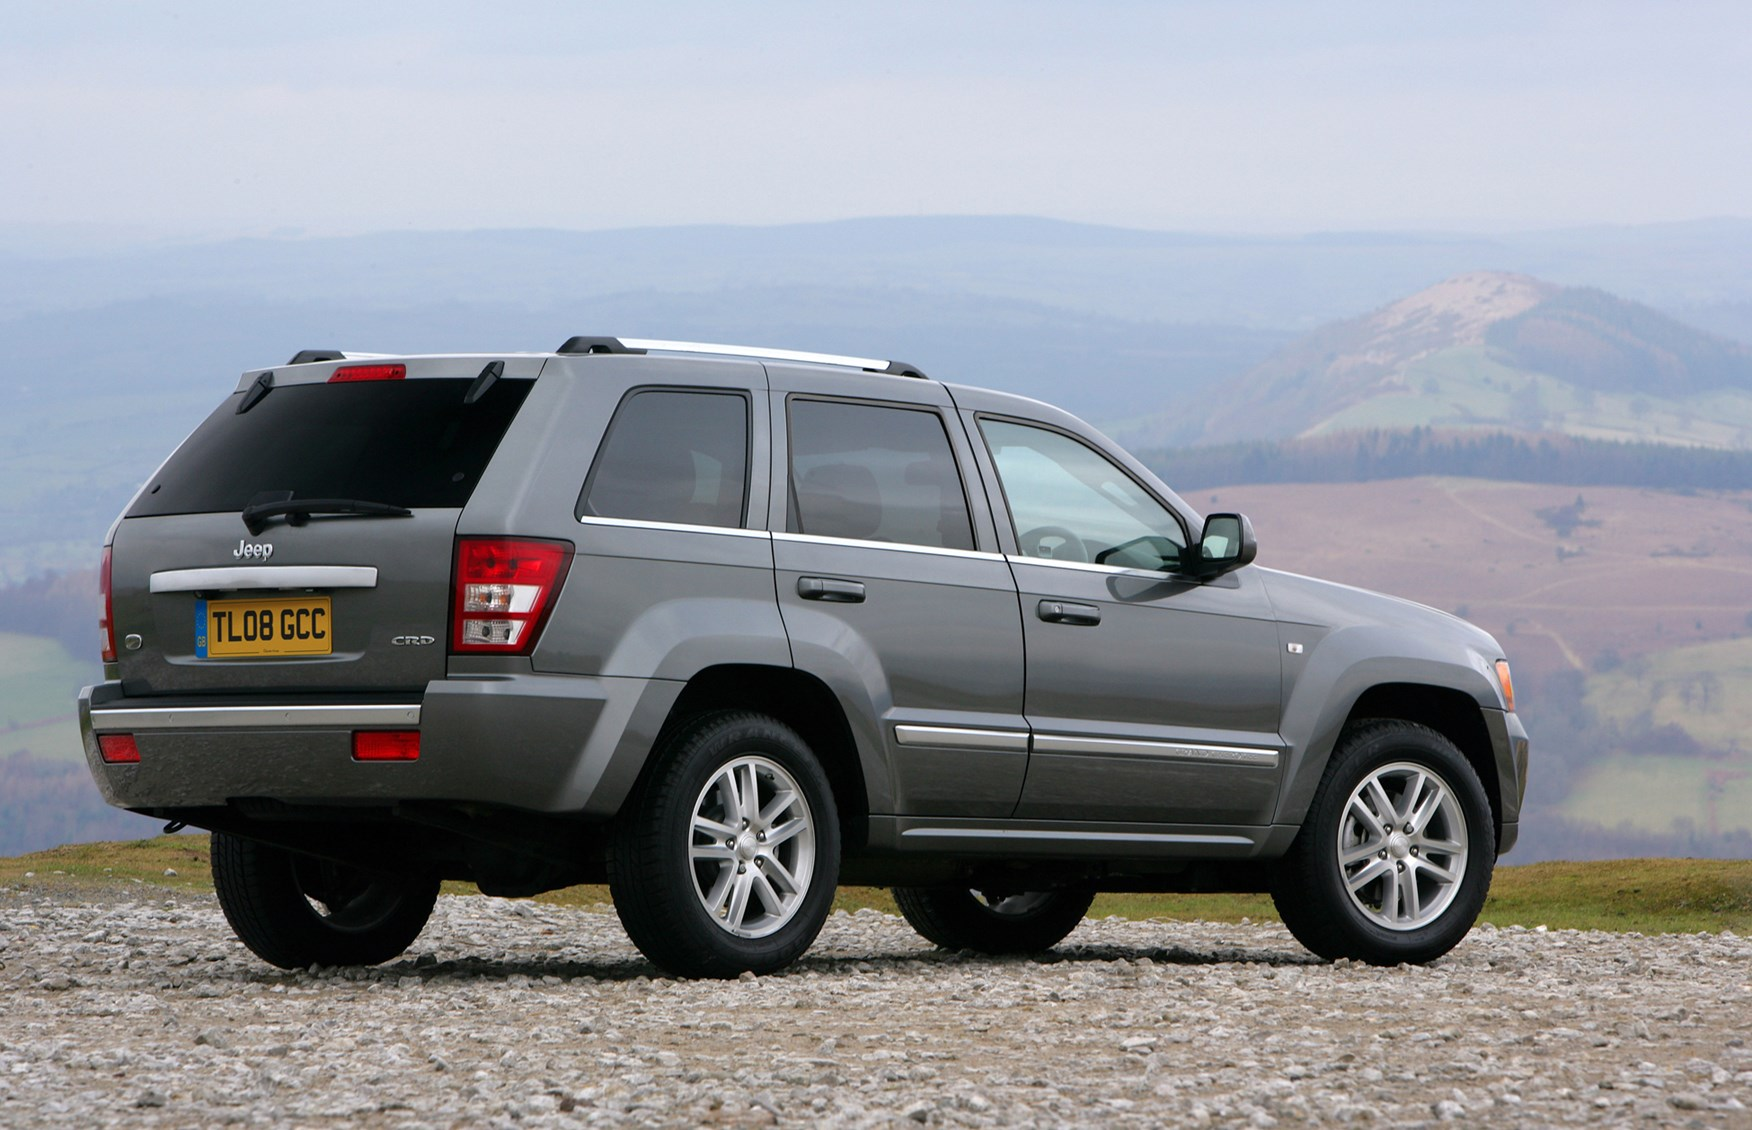 Jeep Grand Cherokee Station Wagon Review 2005 2010 Parkers 2013 Overland Summit